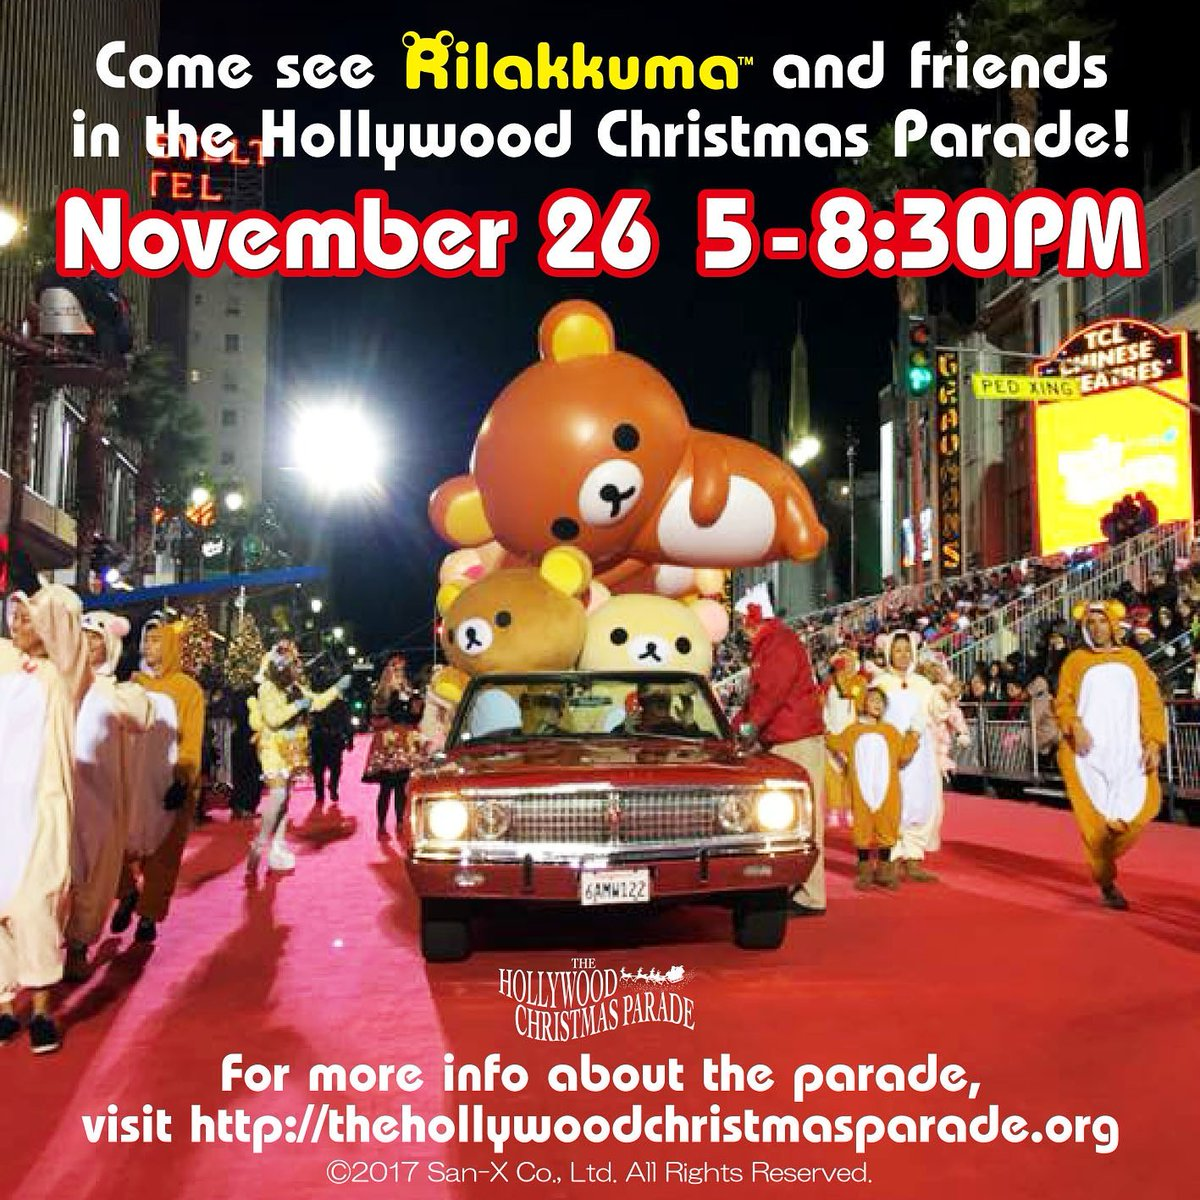 if you are in los angeles come see us at the hollywood christmas parade it will be our second time participating in this fun holiday event